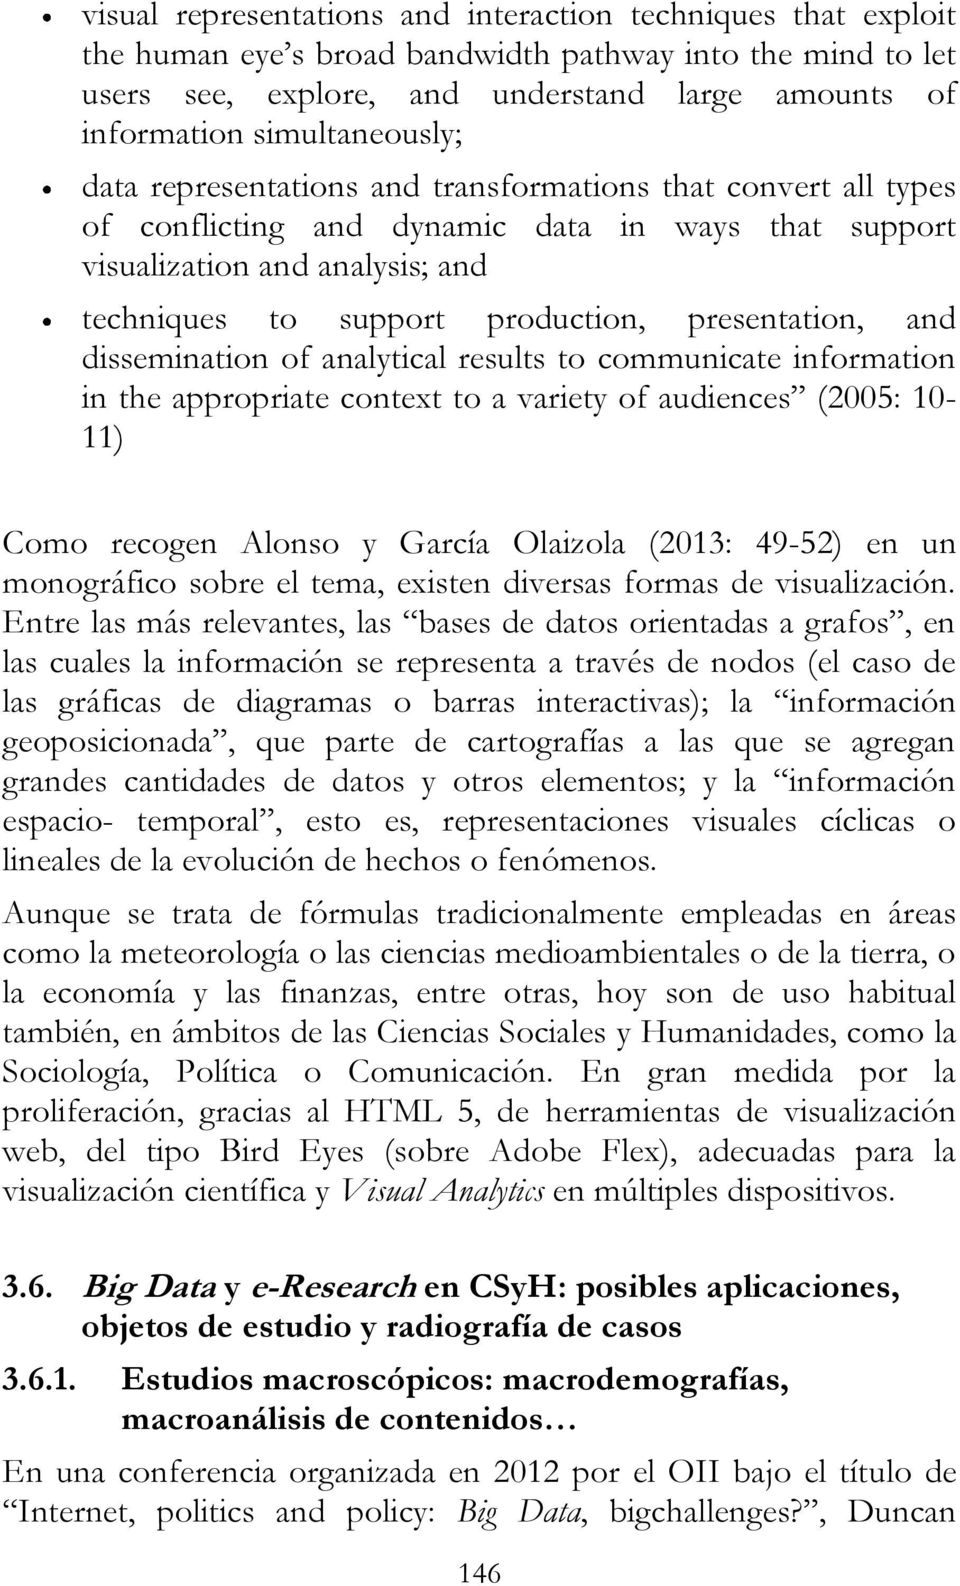 presentation, and dissemination of analytical results to communicate information in the appropriate context to a variety of audiences (2005: 10-11) Como recogen Alonso y García Olaizola (2013: 49-52)